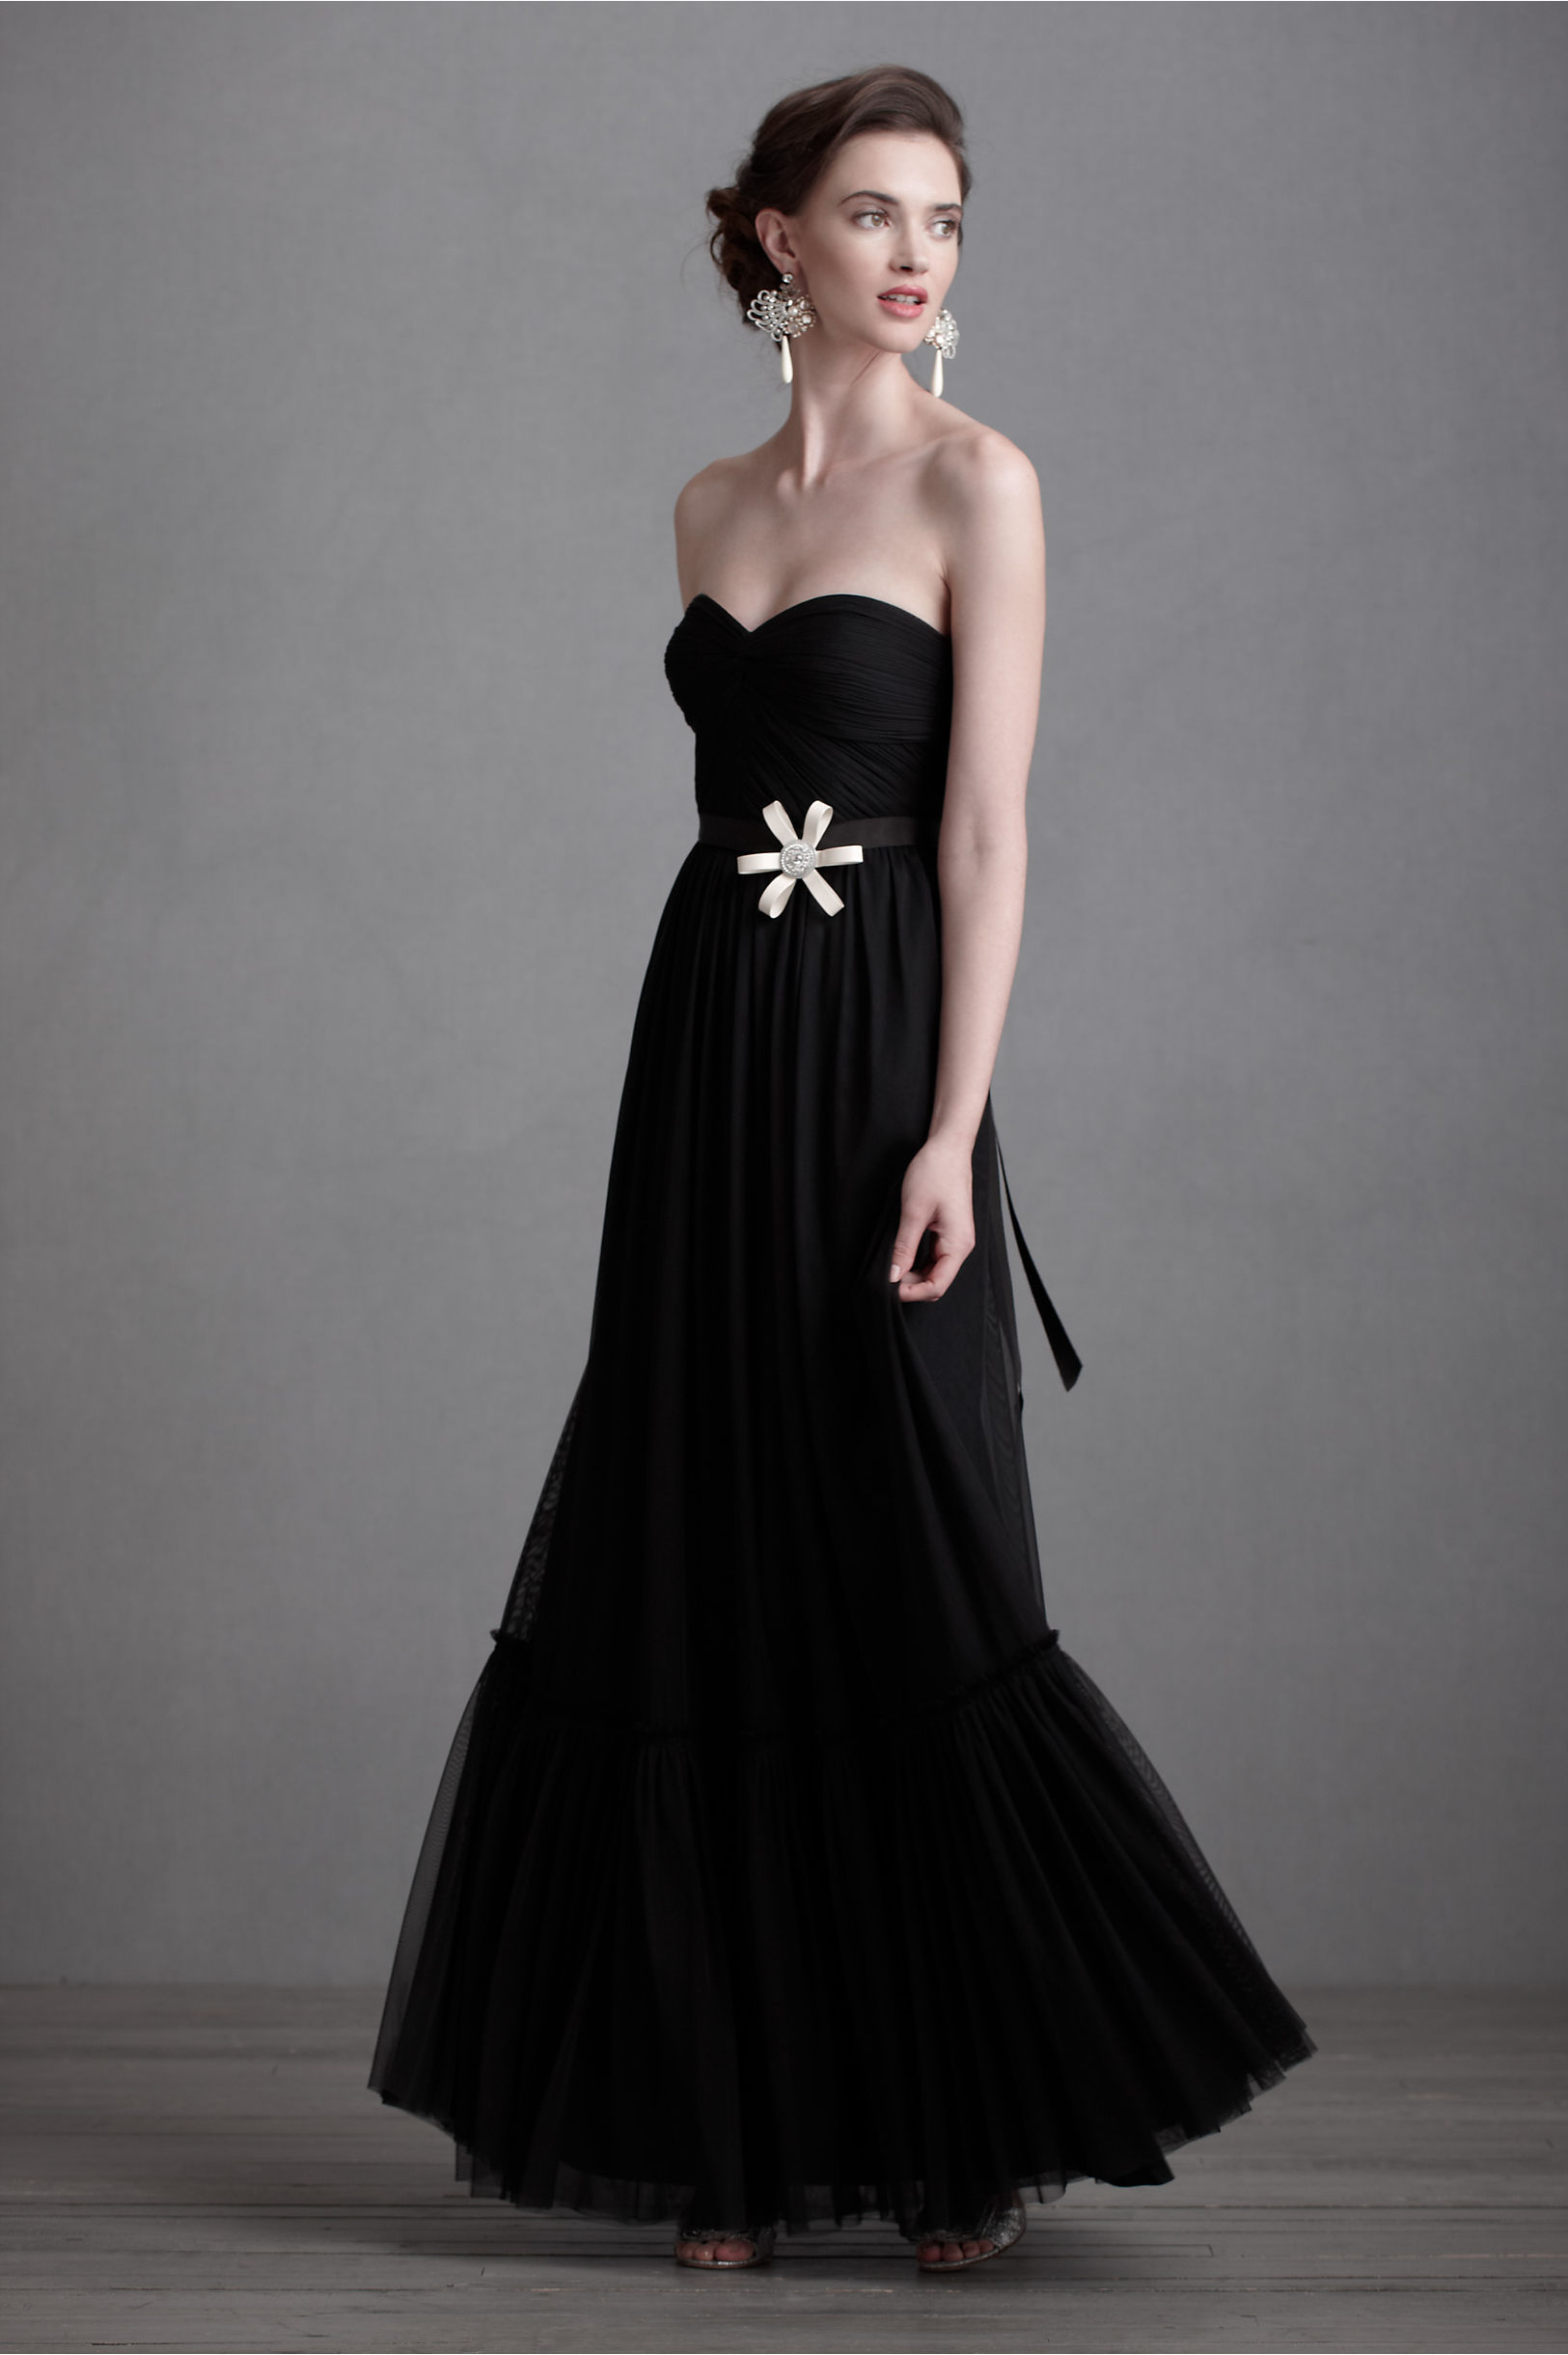 weddings with black bridesmaid dresses black dresses for weddings Weddings With Black Bridesmaid Dresses 23